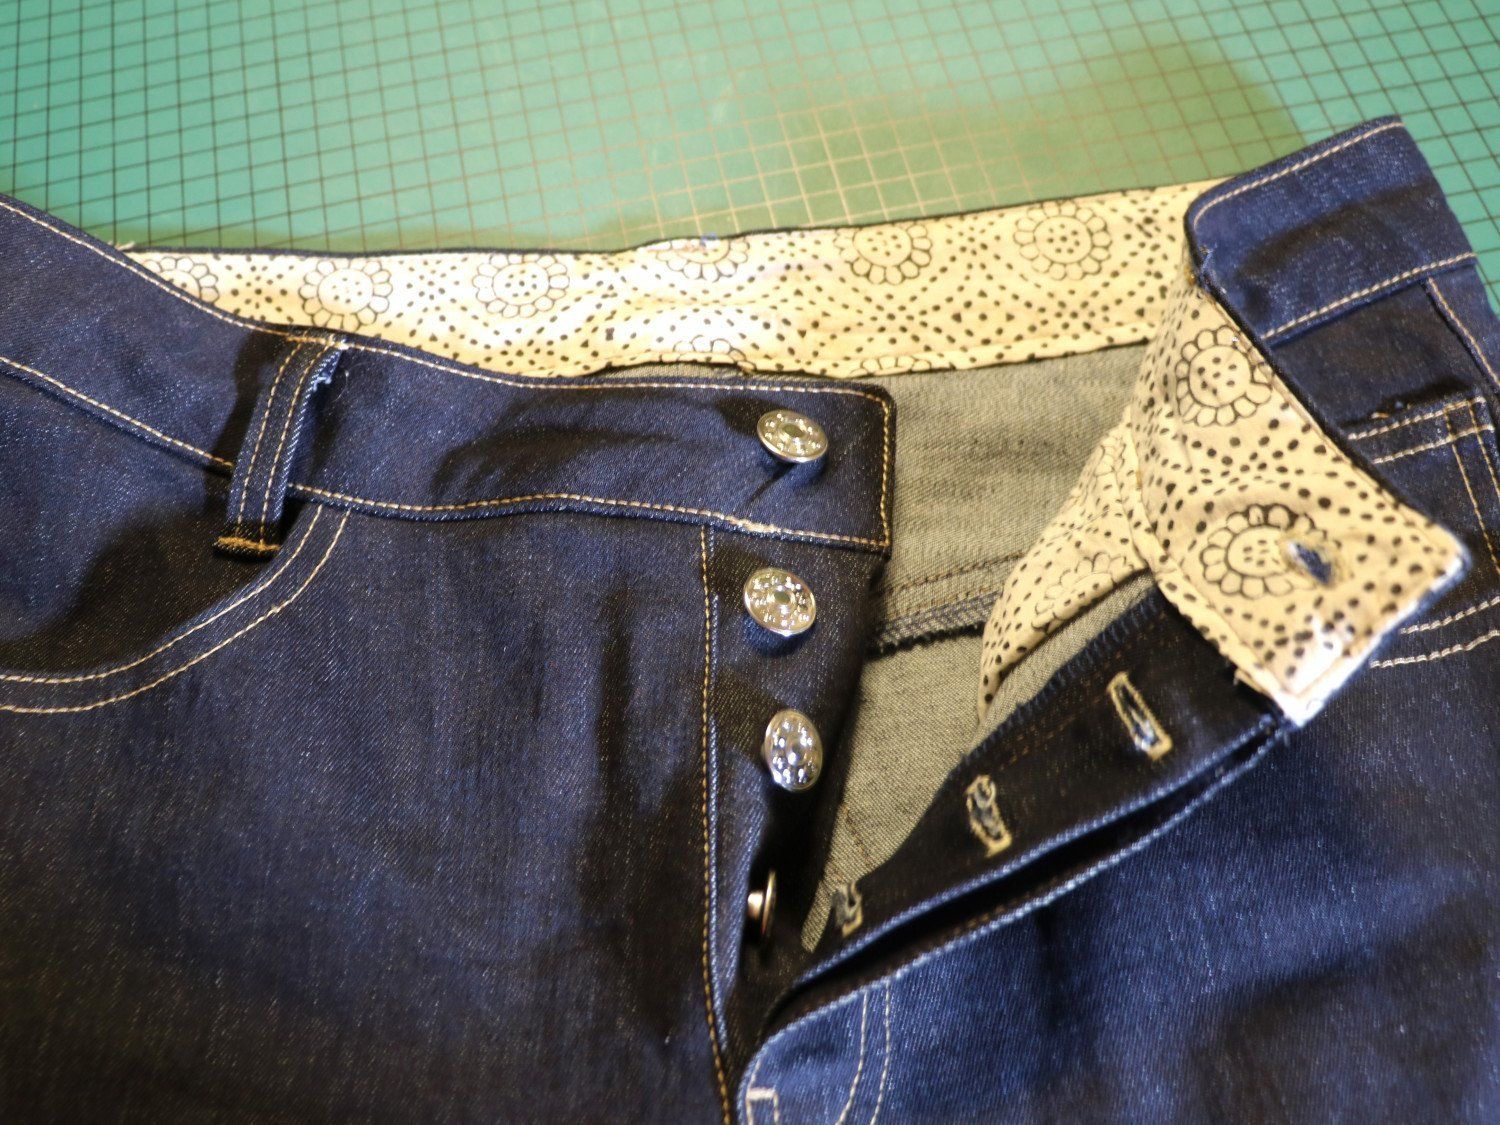 Morgan jeans review by Bobbins and Buttons